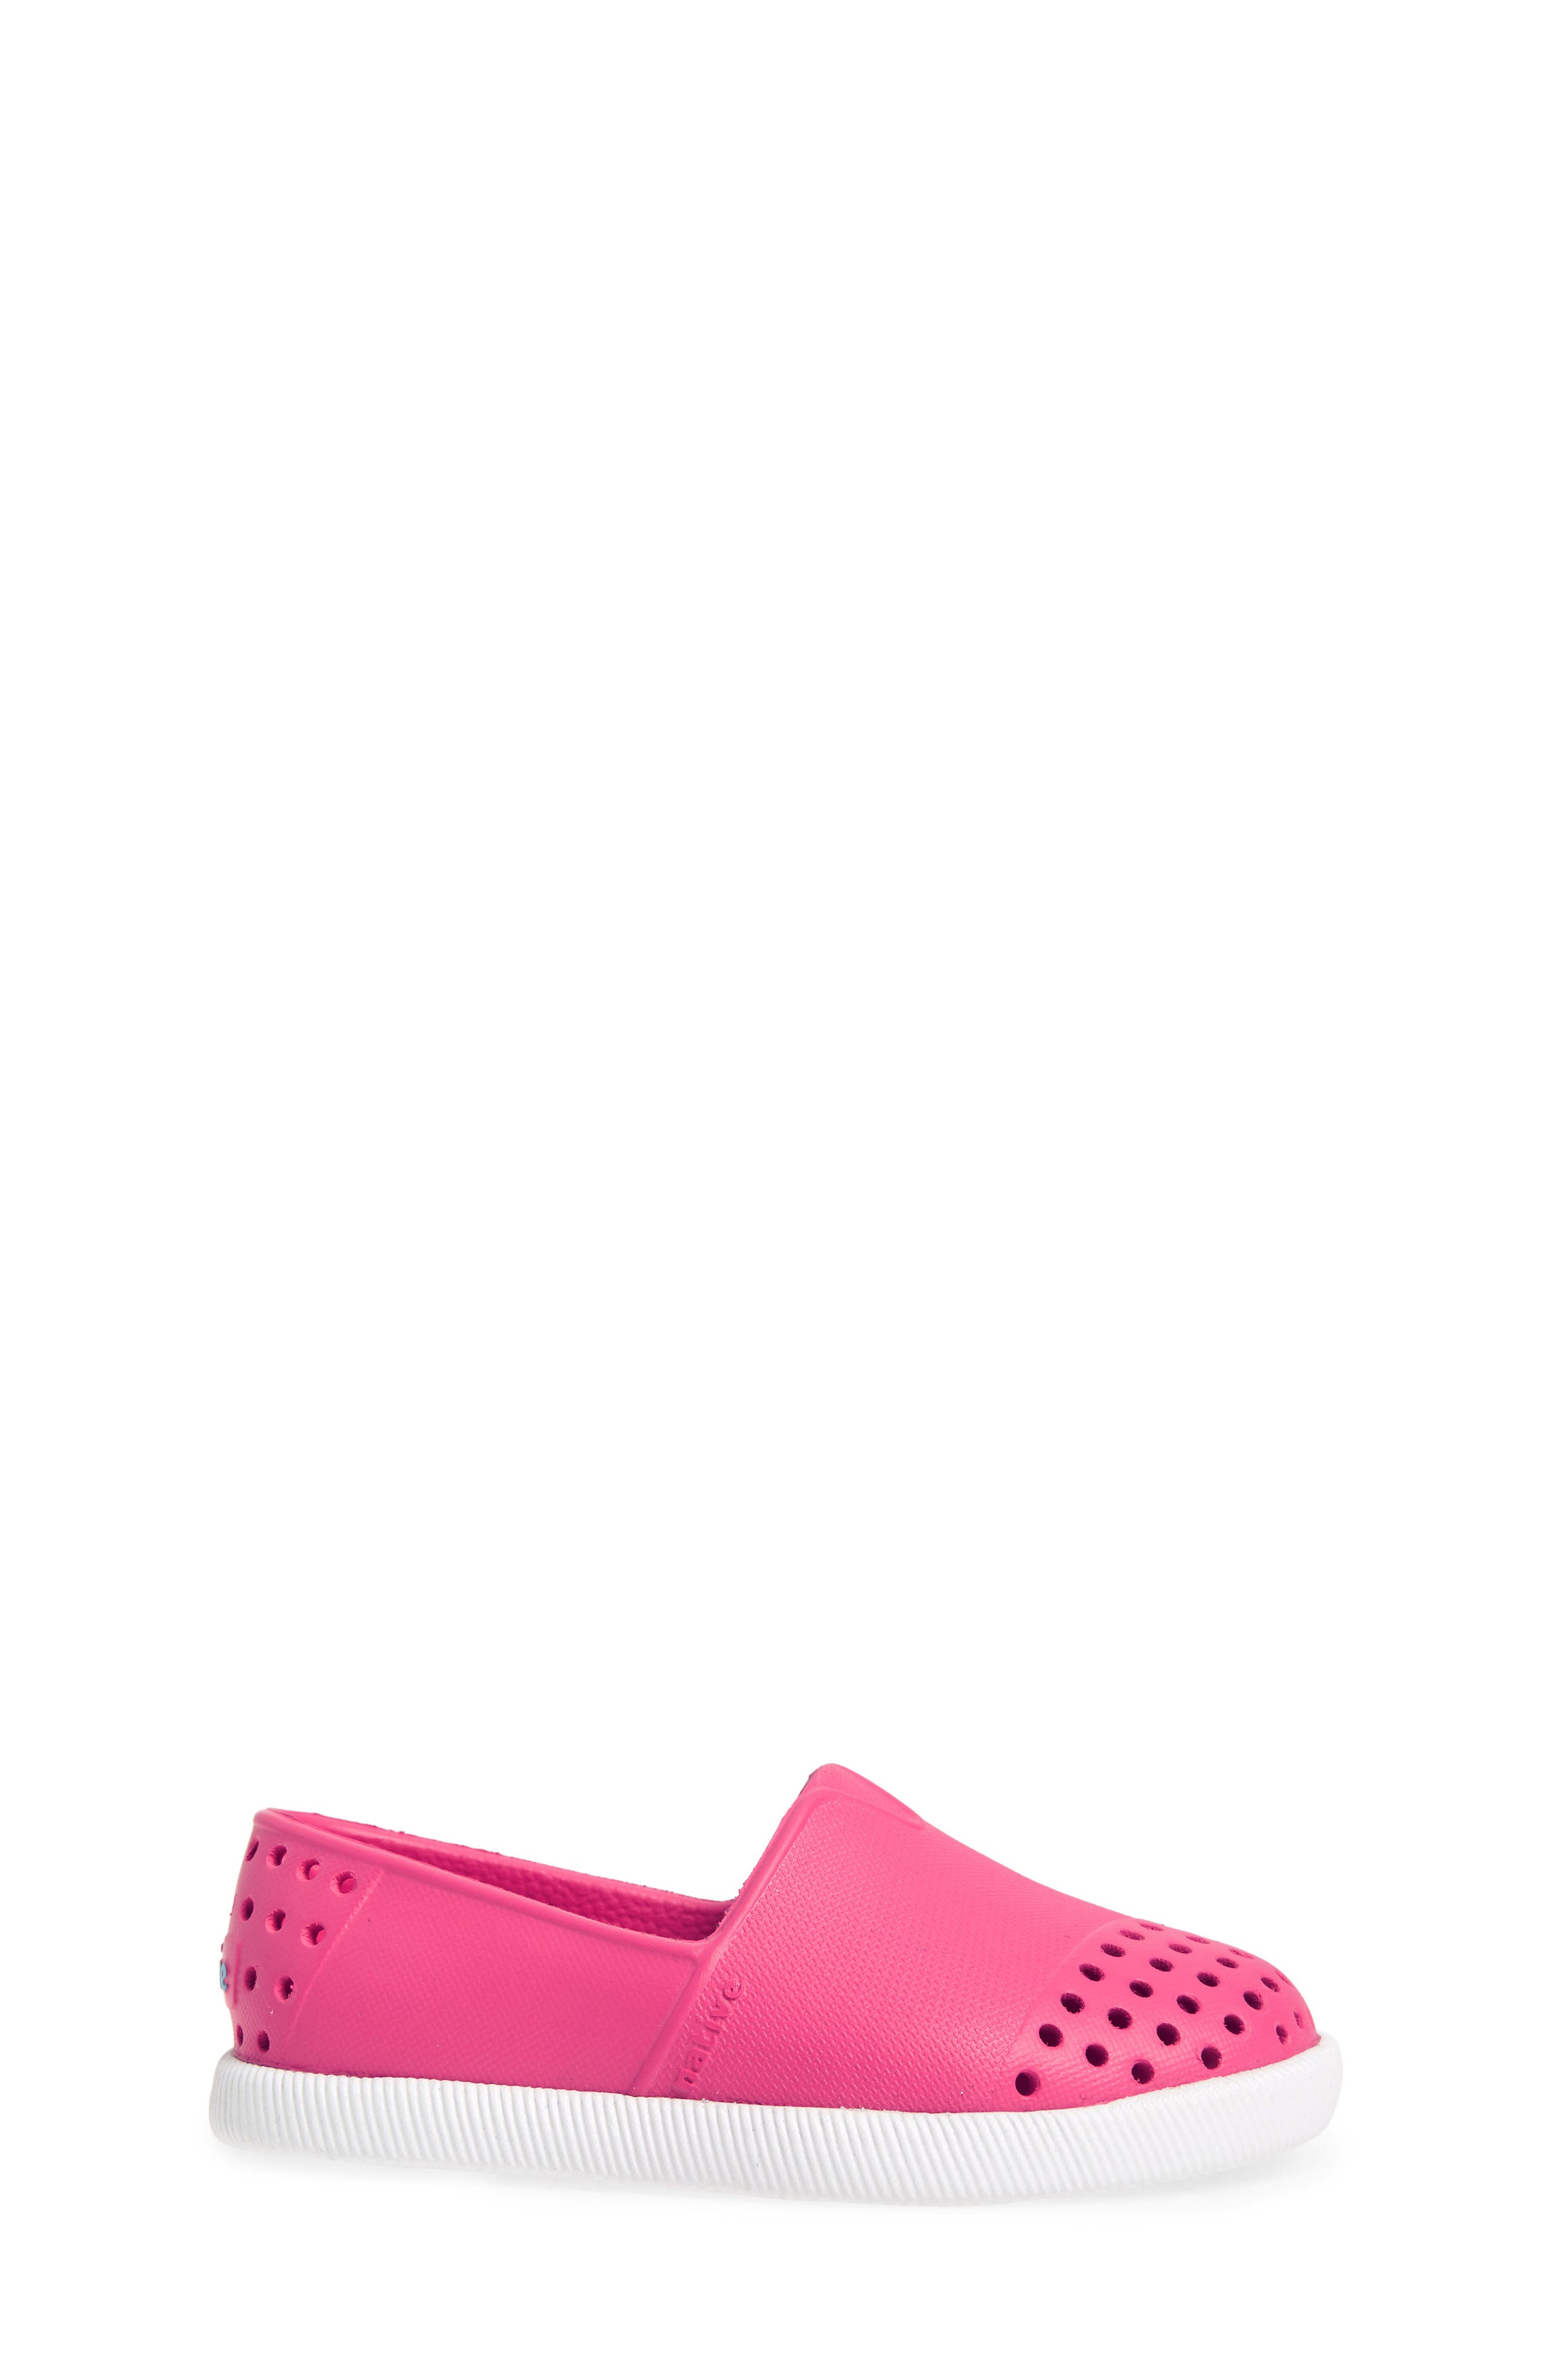 Verona Perforated Water Friendly Slip-On,                             Alternate thumbnail 3, color,                             Hollywood Pink/ Shell White